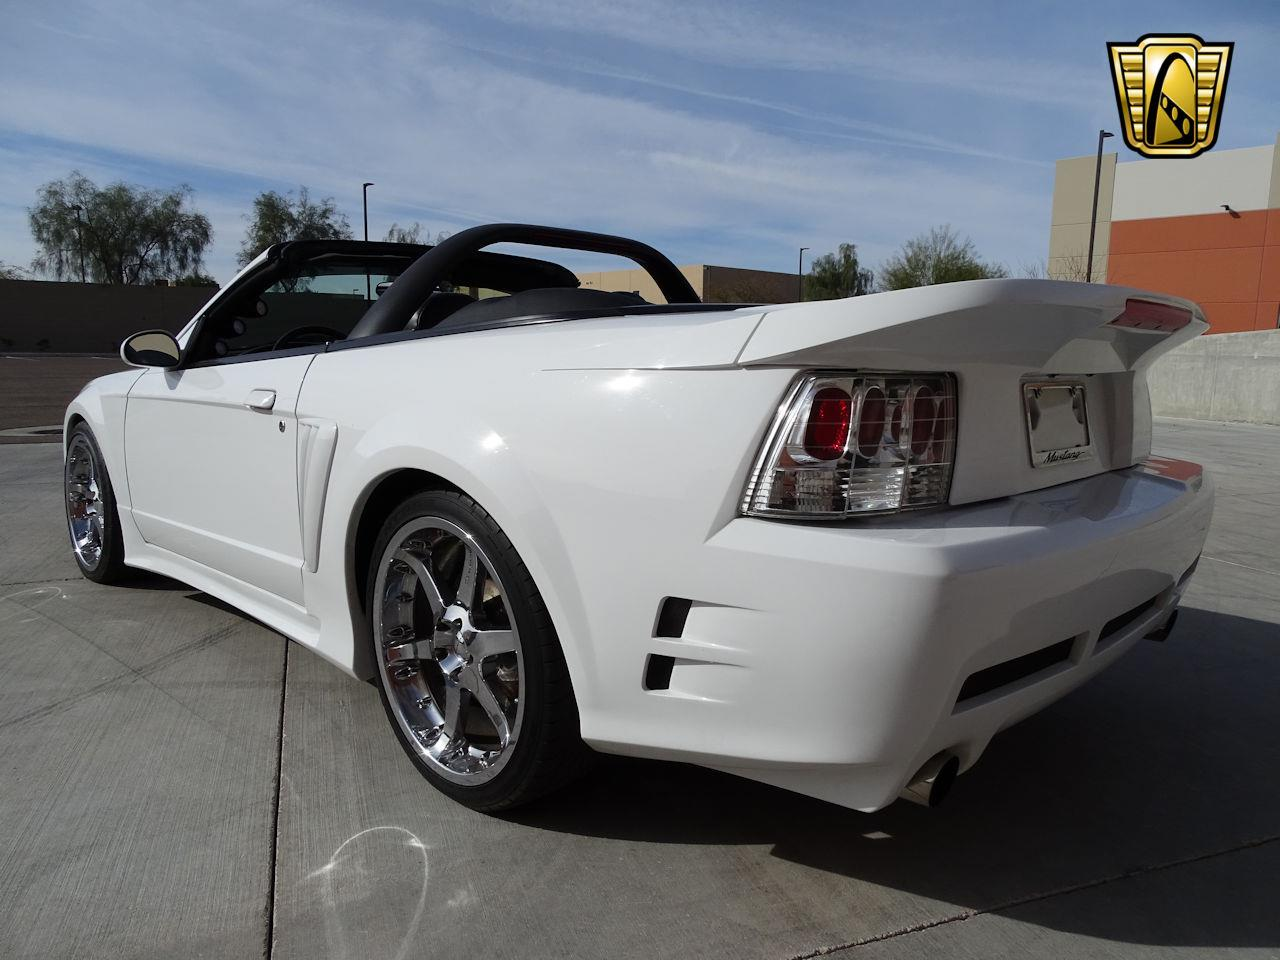 Large Picture of 2002 Ford Mustang located in Arizona Offered by Gateway Classic Cars - Scottsdale - MZG0